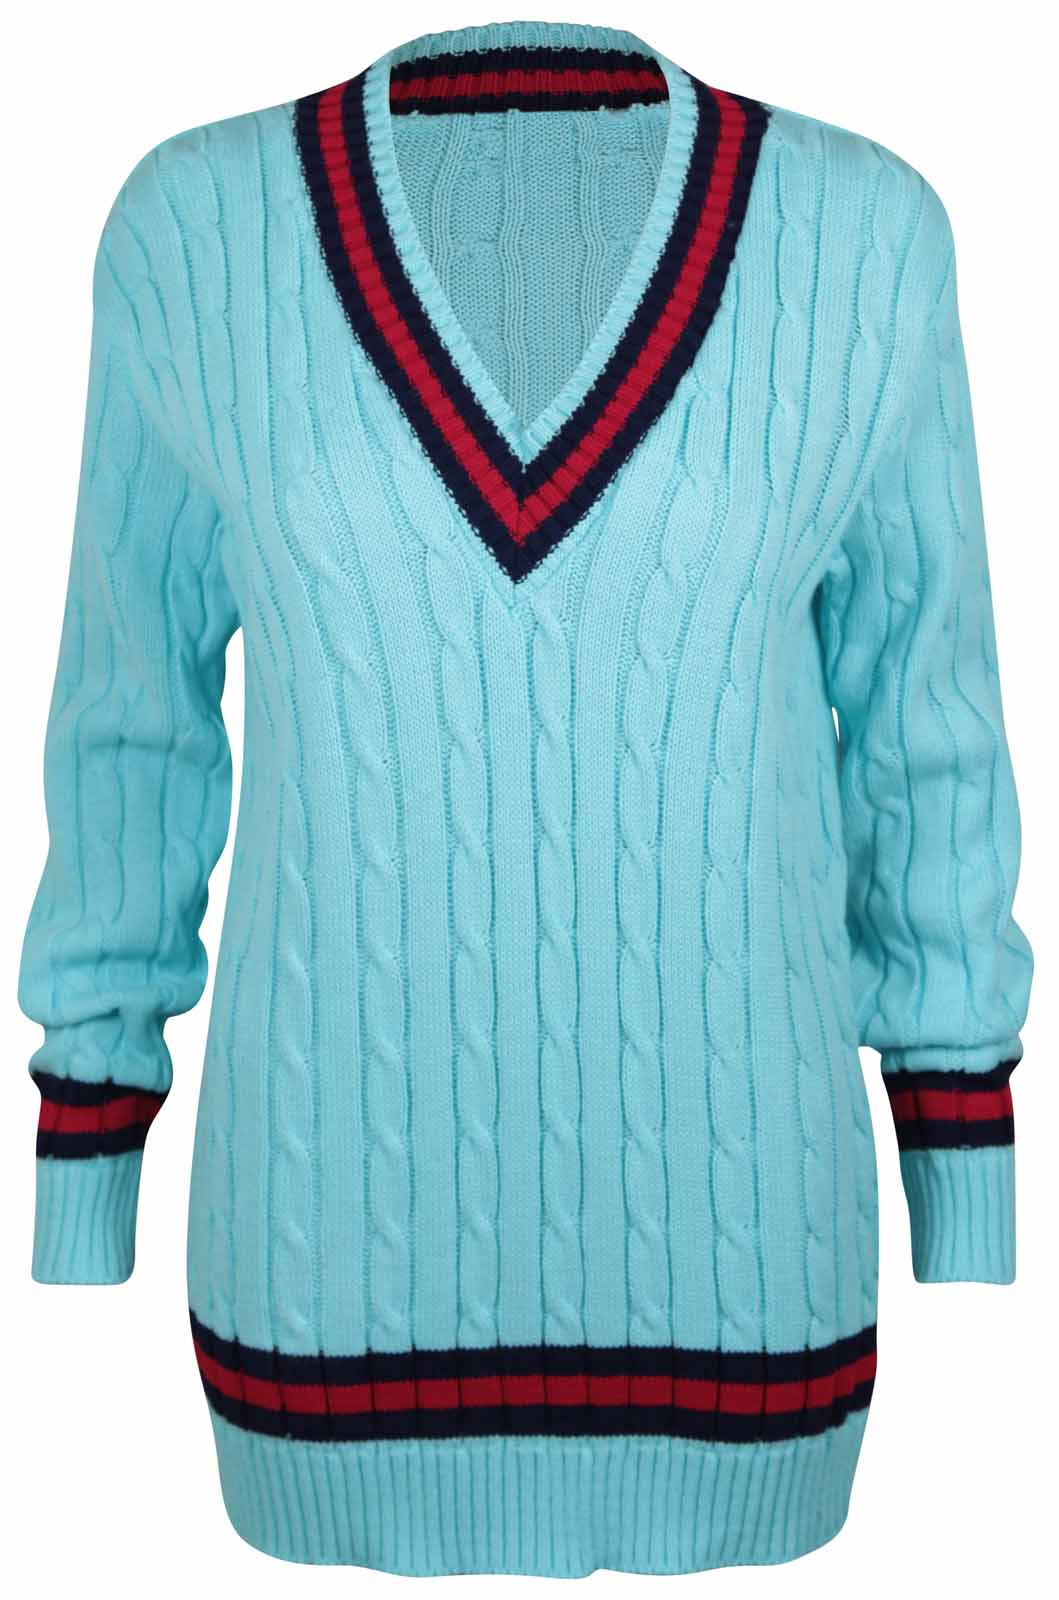 Knitting Pattern Cricket Jumper : NEW LADIES V NECK CABLE KNITTED CRICKET JUMPER WOMENS STRETCH LONG TOP SIZE 8...